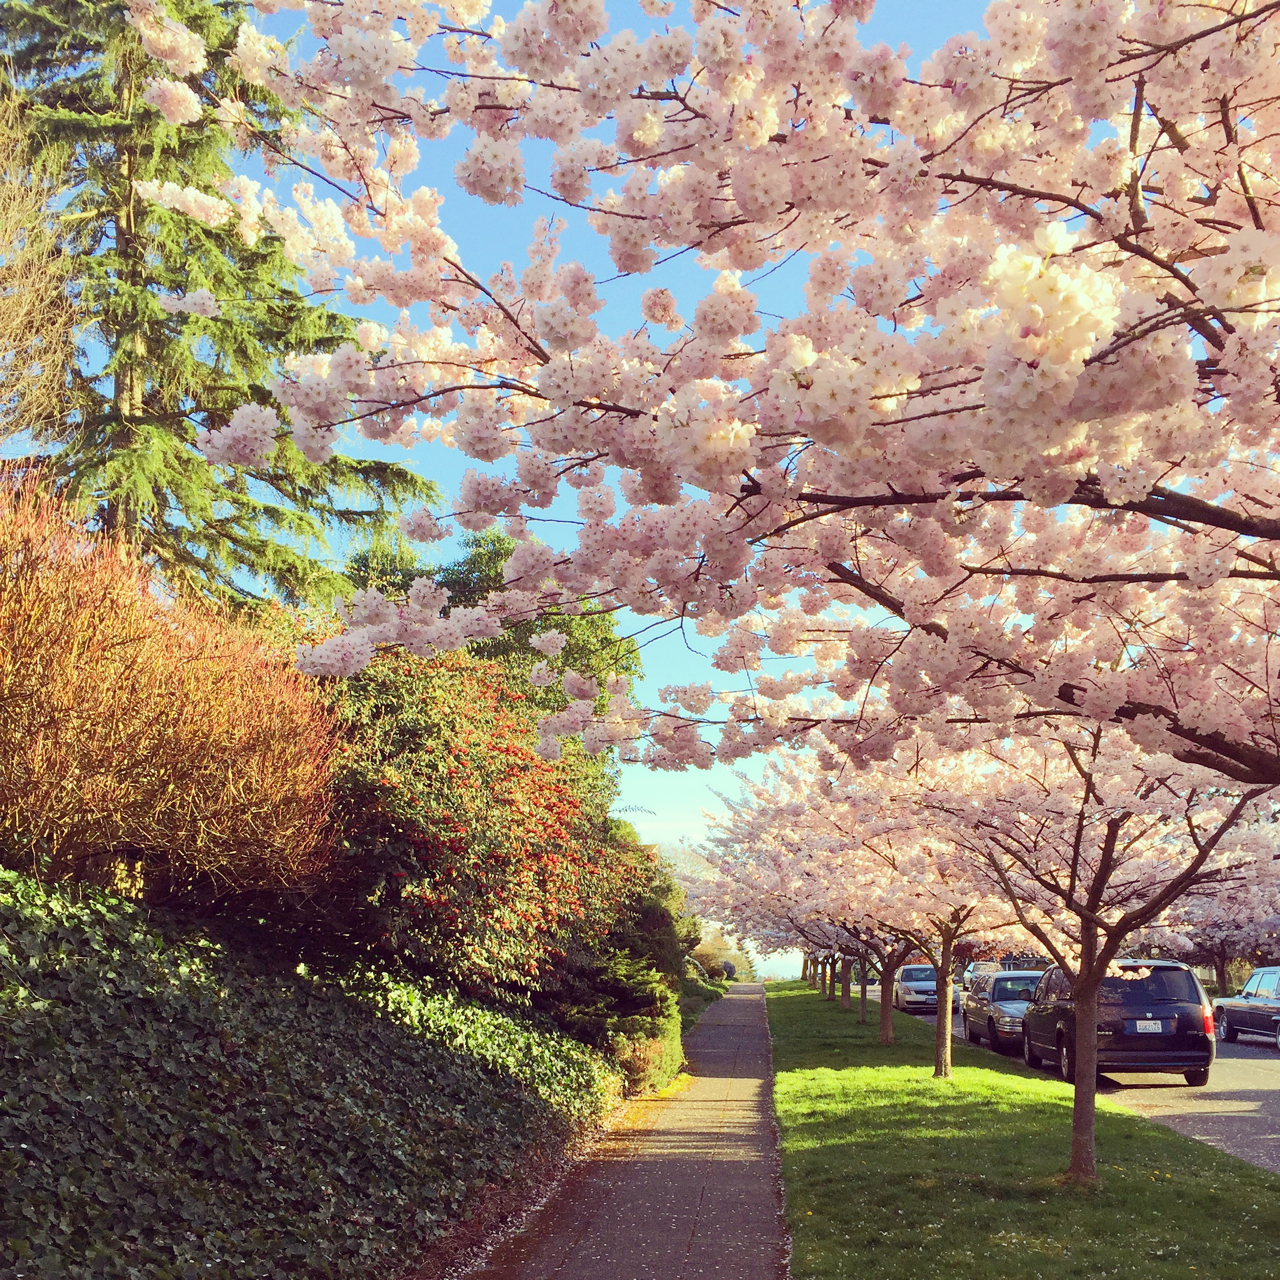 The cherry blossom lined streets